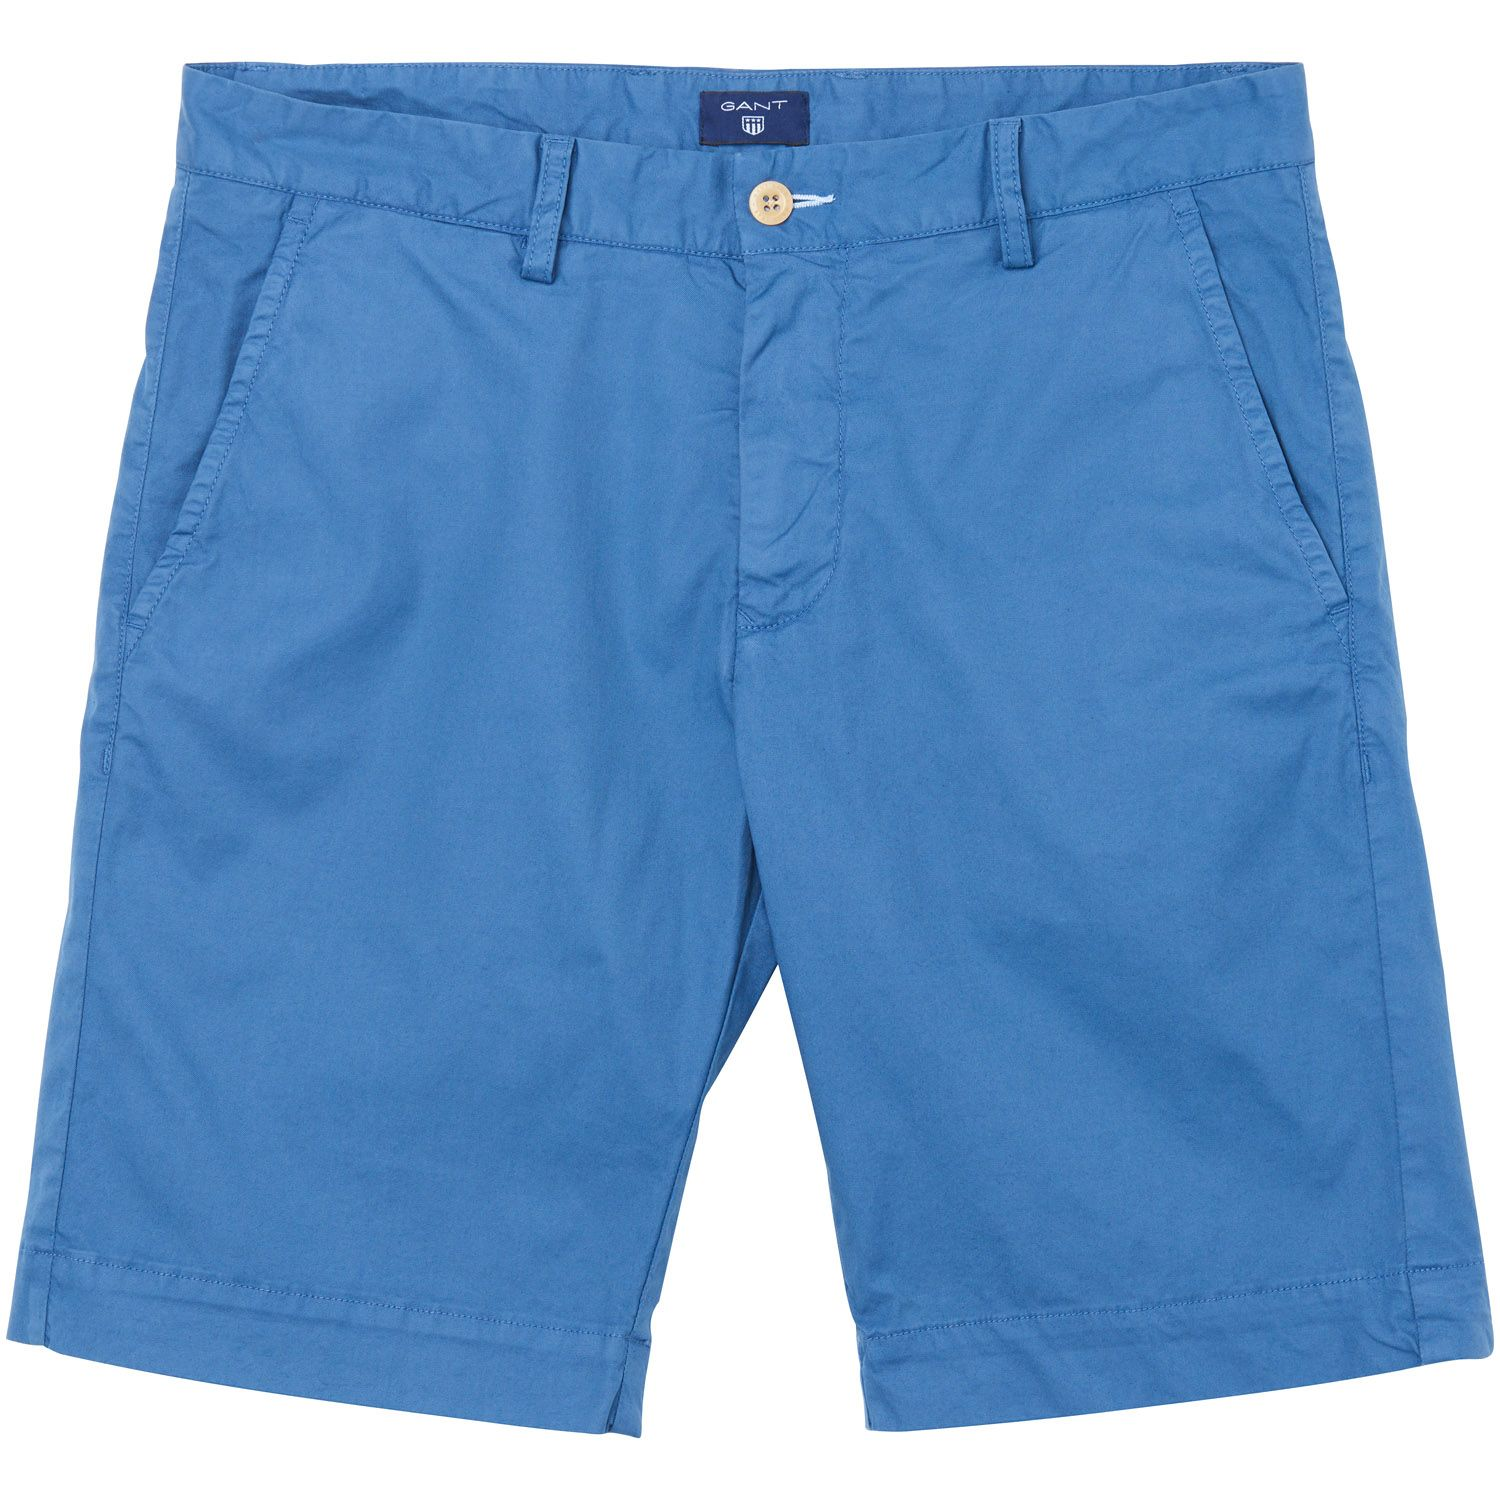 GANT Hurricane Blue Summer Shorts